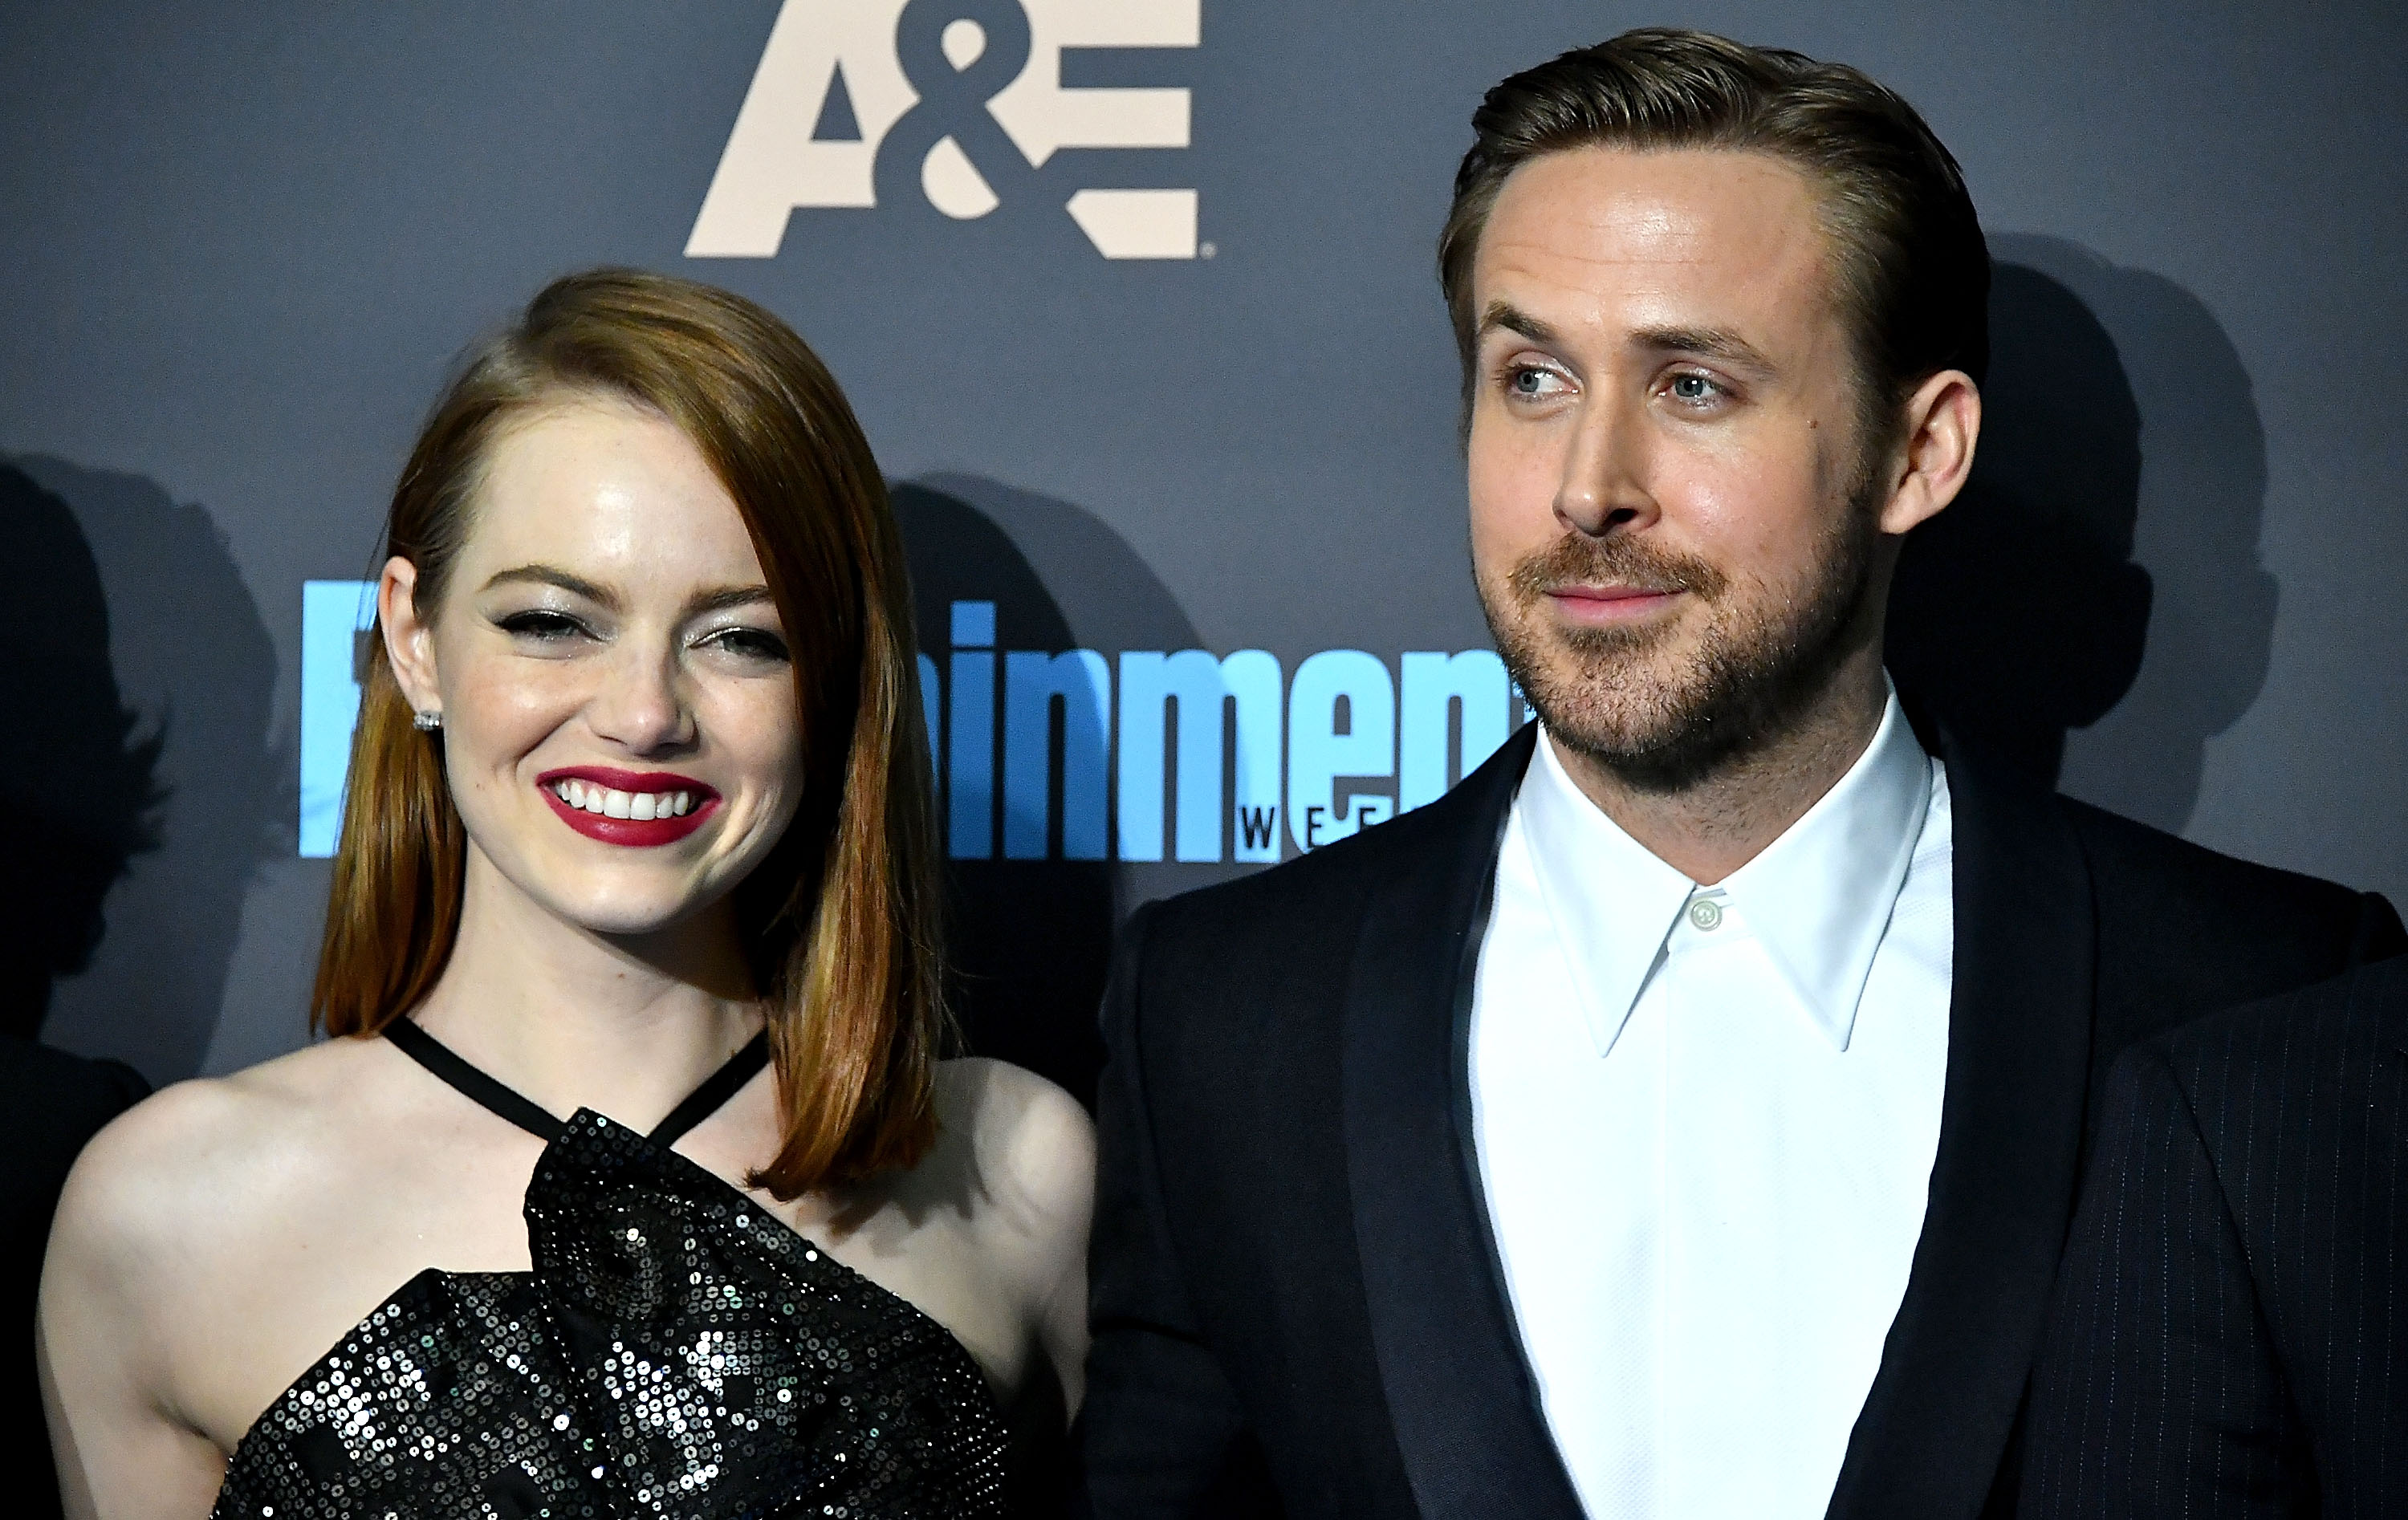 Even Ryan Gosling and Emma Stone had career doubts, so don't stress too much about always making 'the right move'